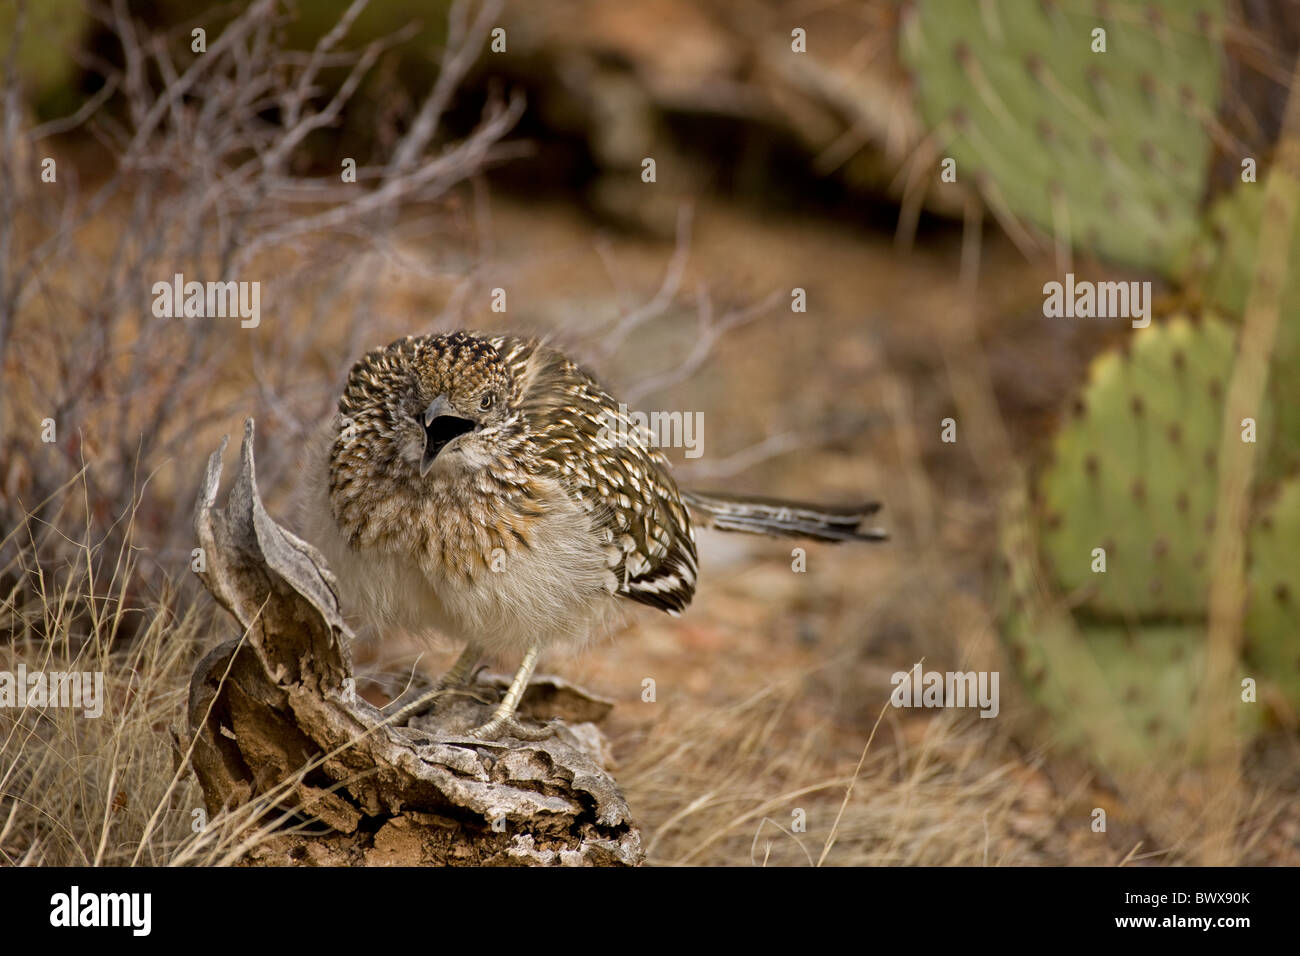 Greater Roadrunner (Geococcyx californianus) Arizona mouth open cooling itself Stock Photo